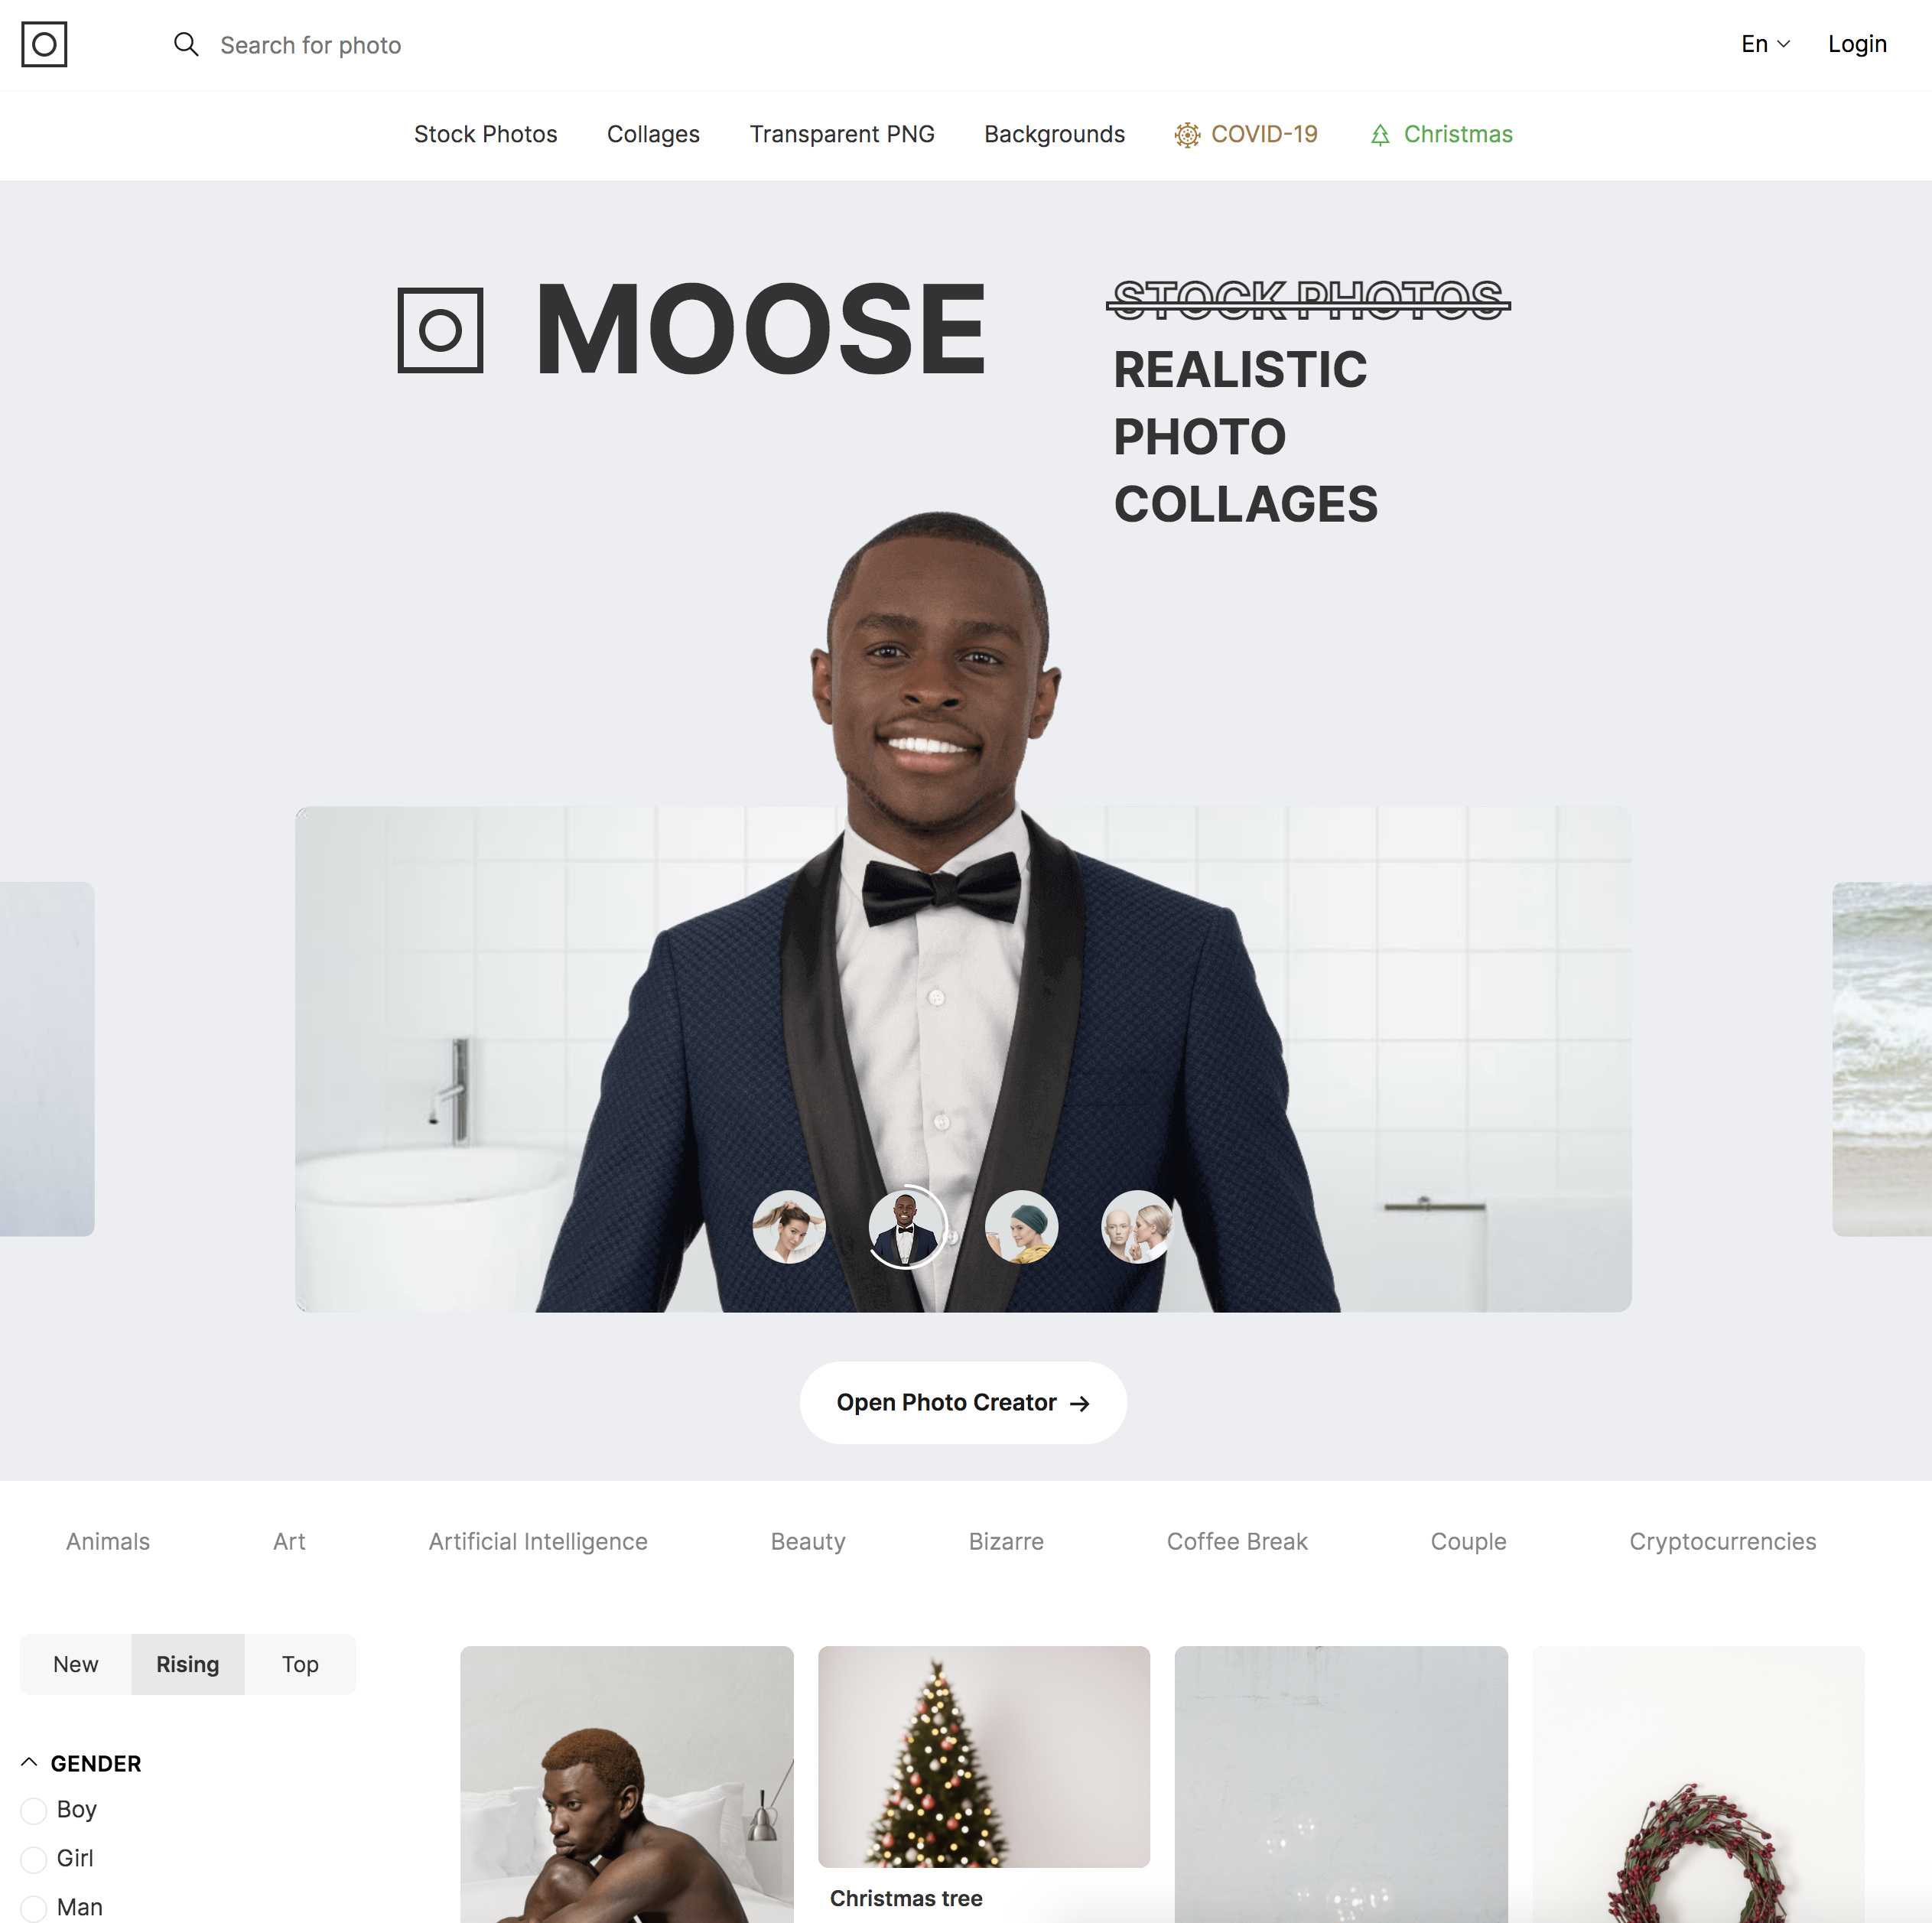 Screenshot of the Moose page by Icons 8